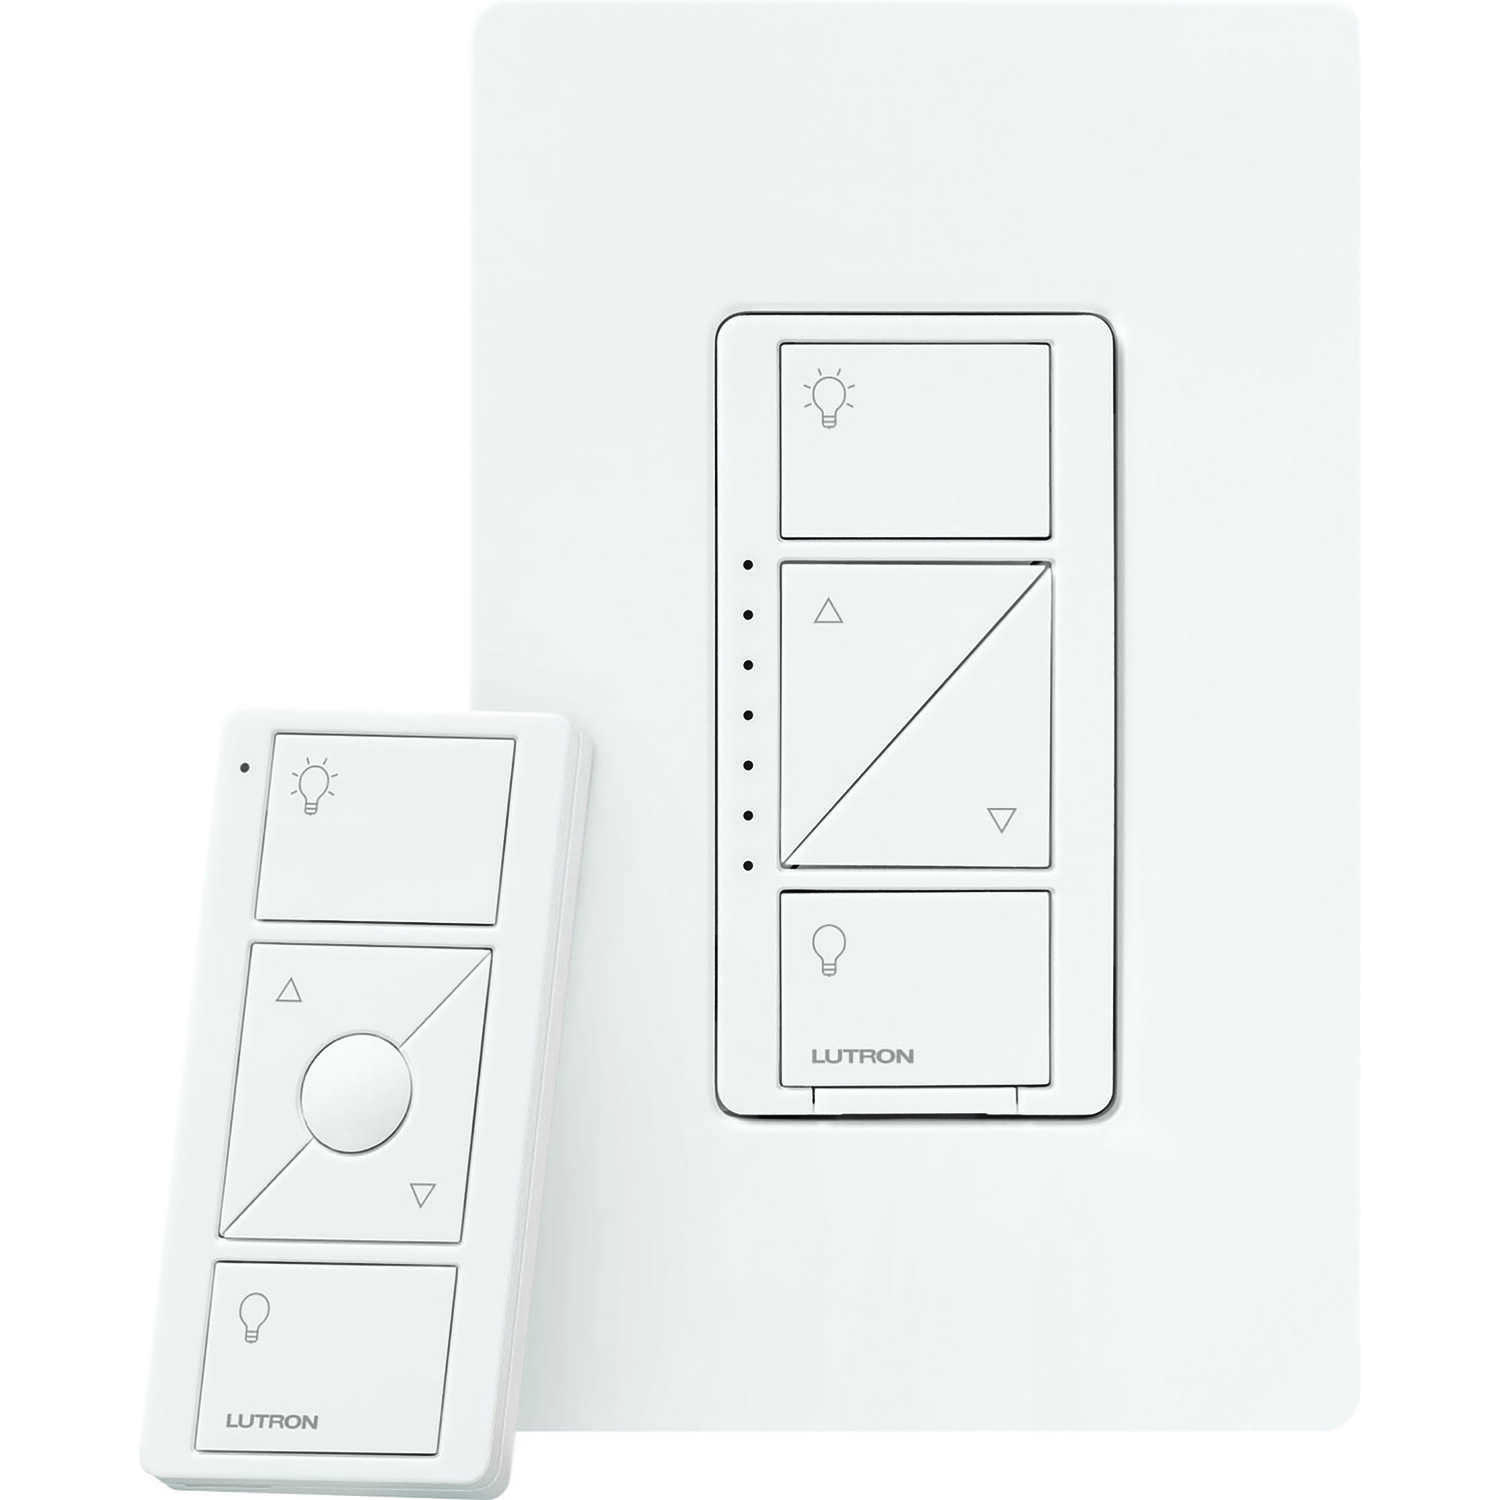 Lutron  Caseta  White  150 watts Wireless  Dimmer Switch w/Remote Control  1 pk